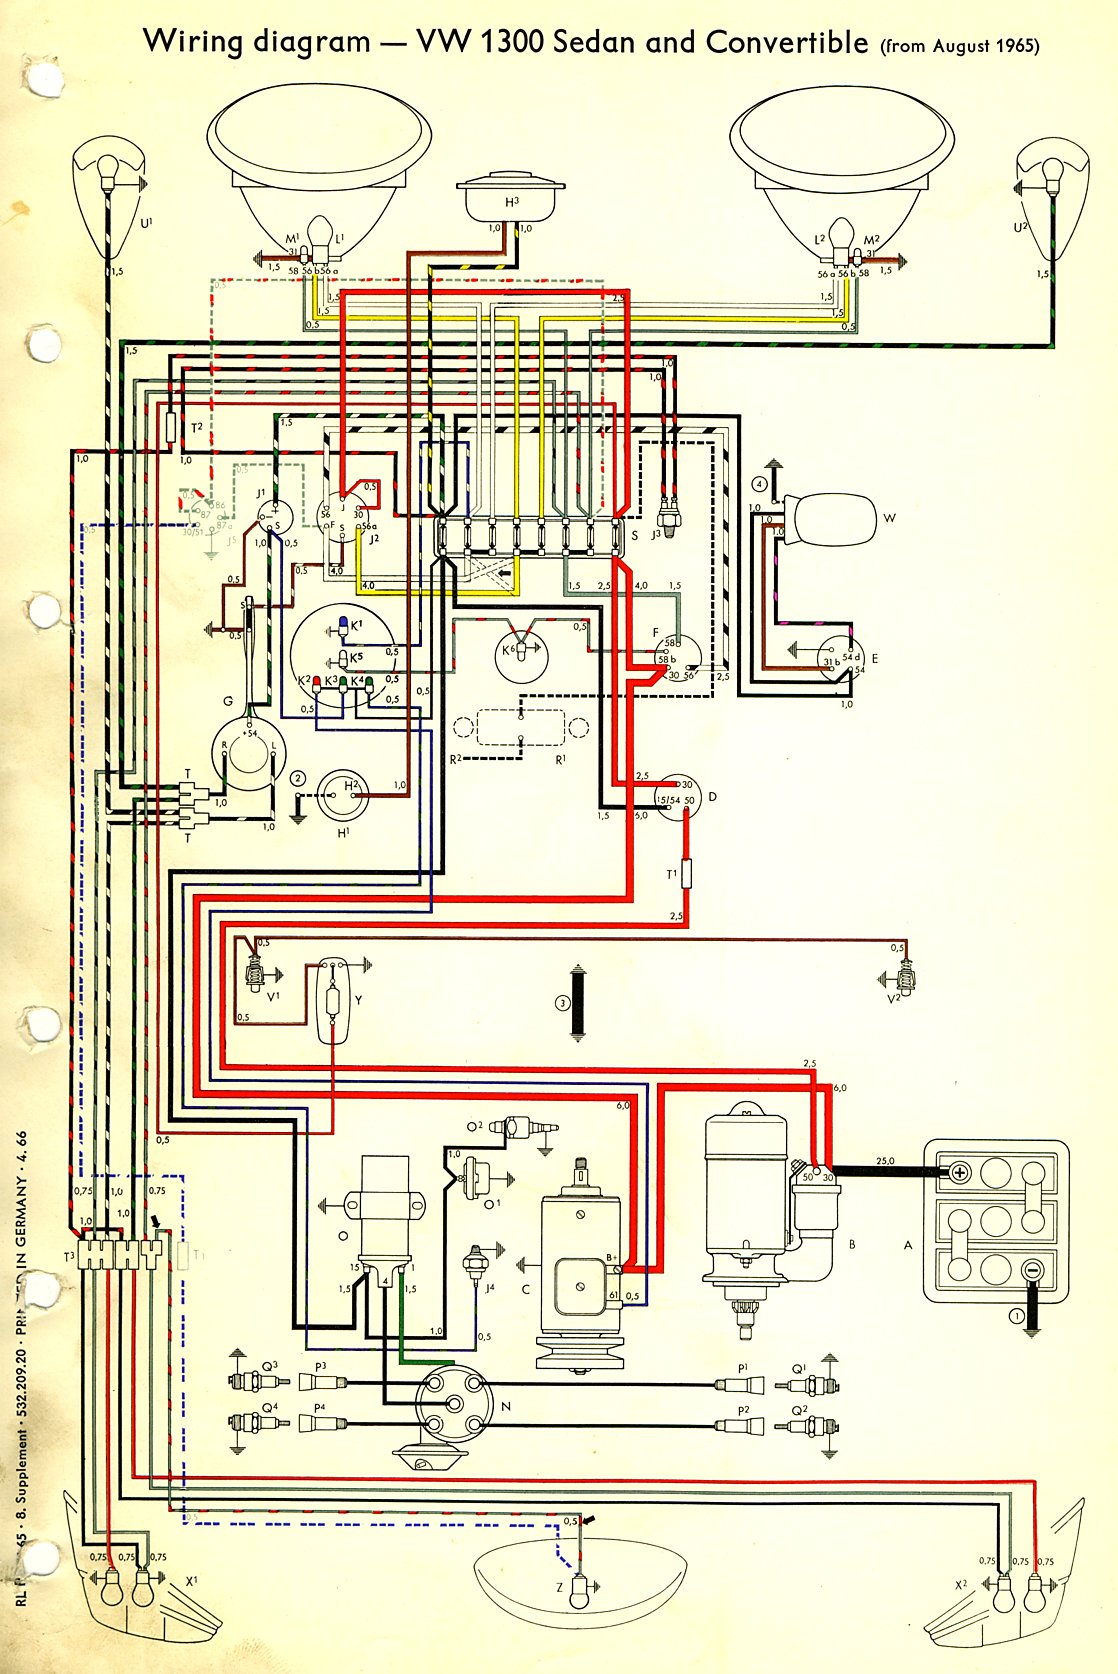 Volkswagen Wiring Diagram Schematics Vw Thing Thesamba Com Type 1 Diagrams 74